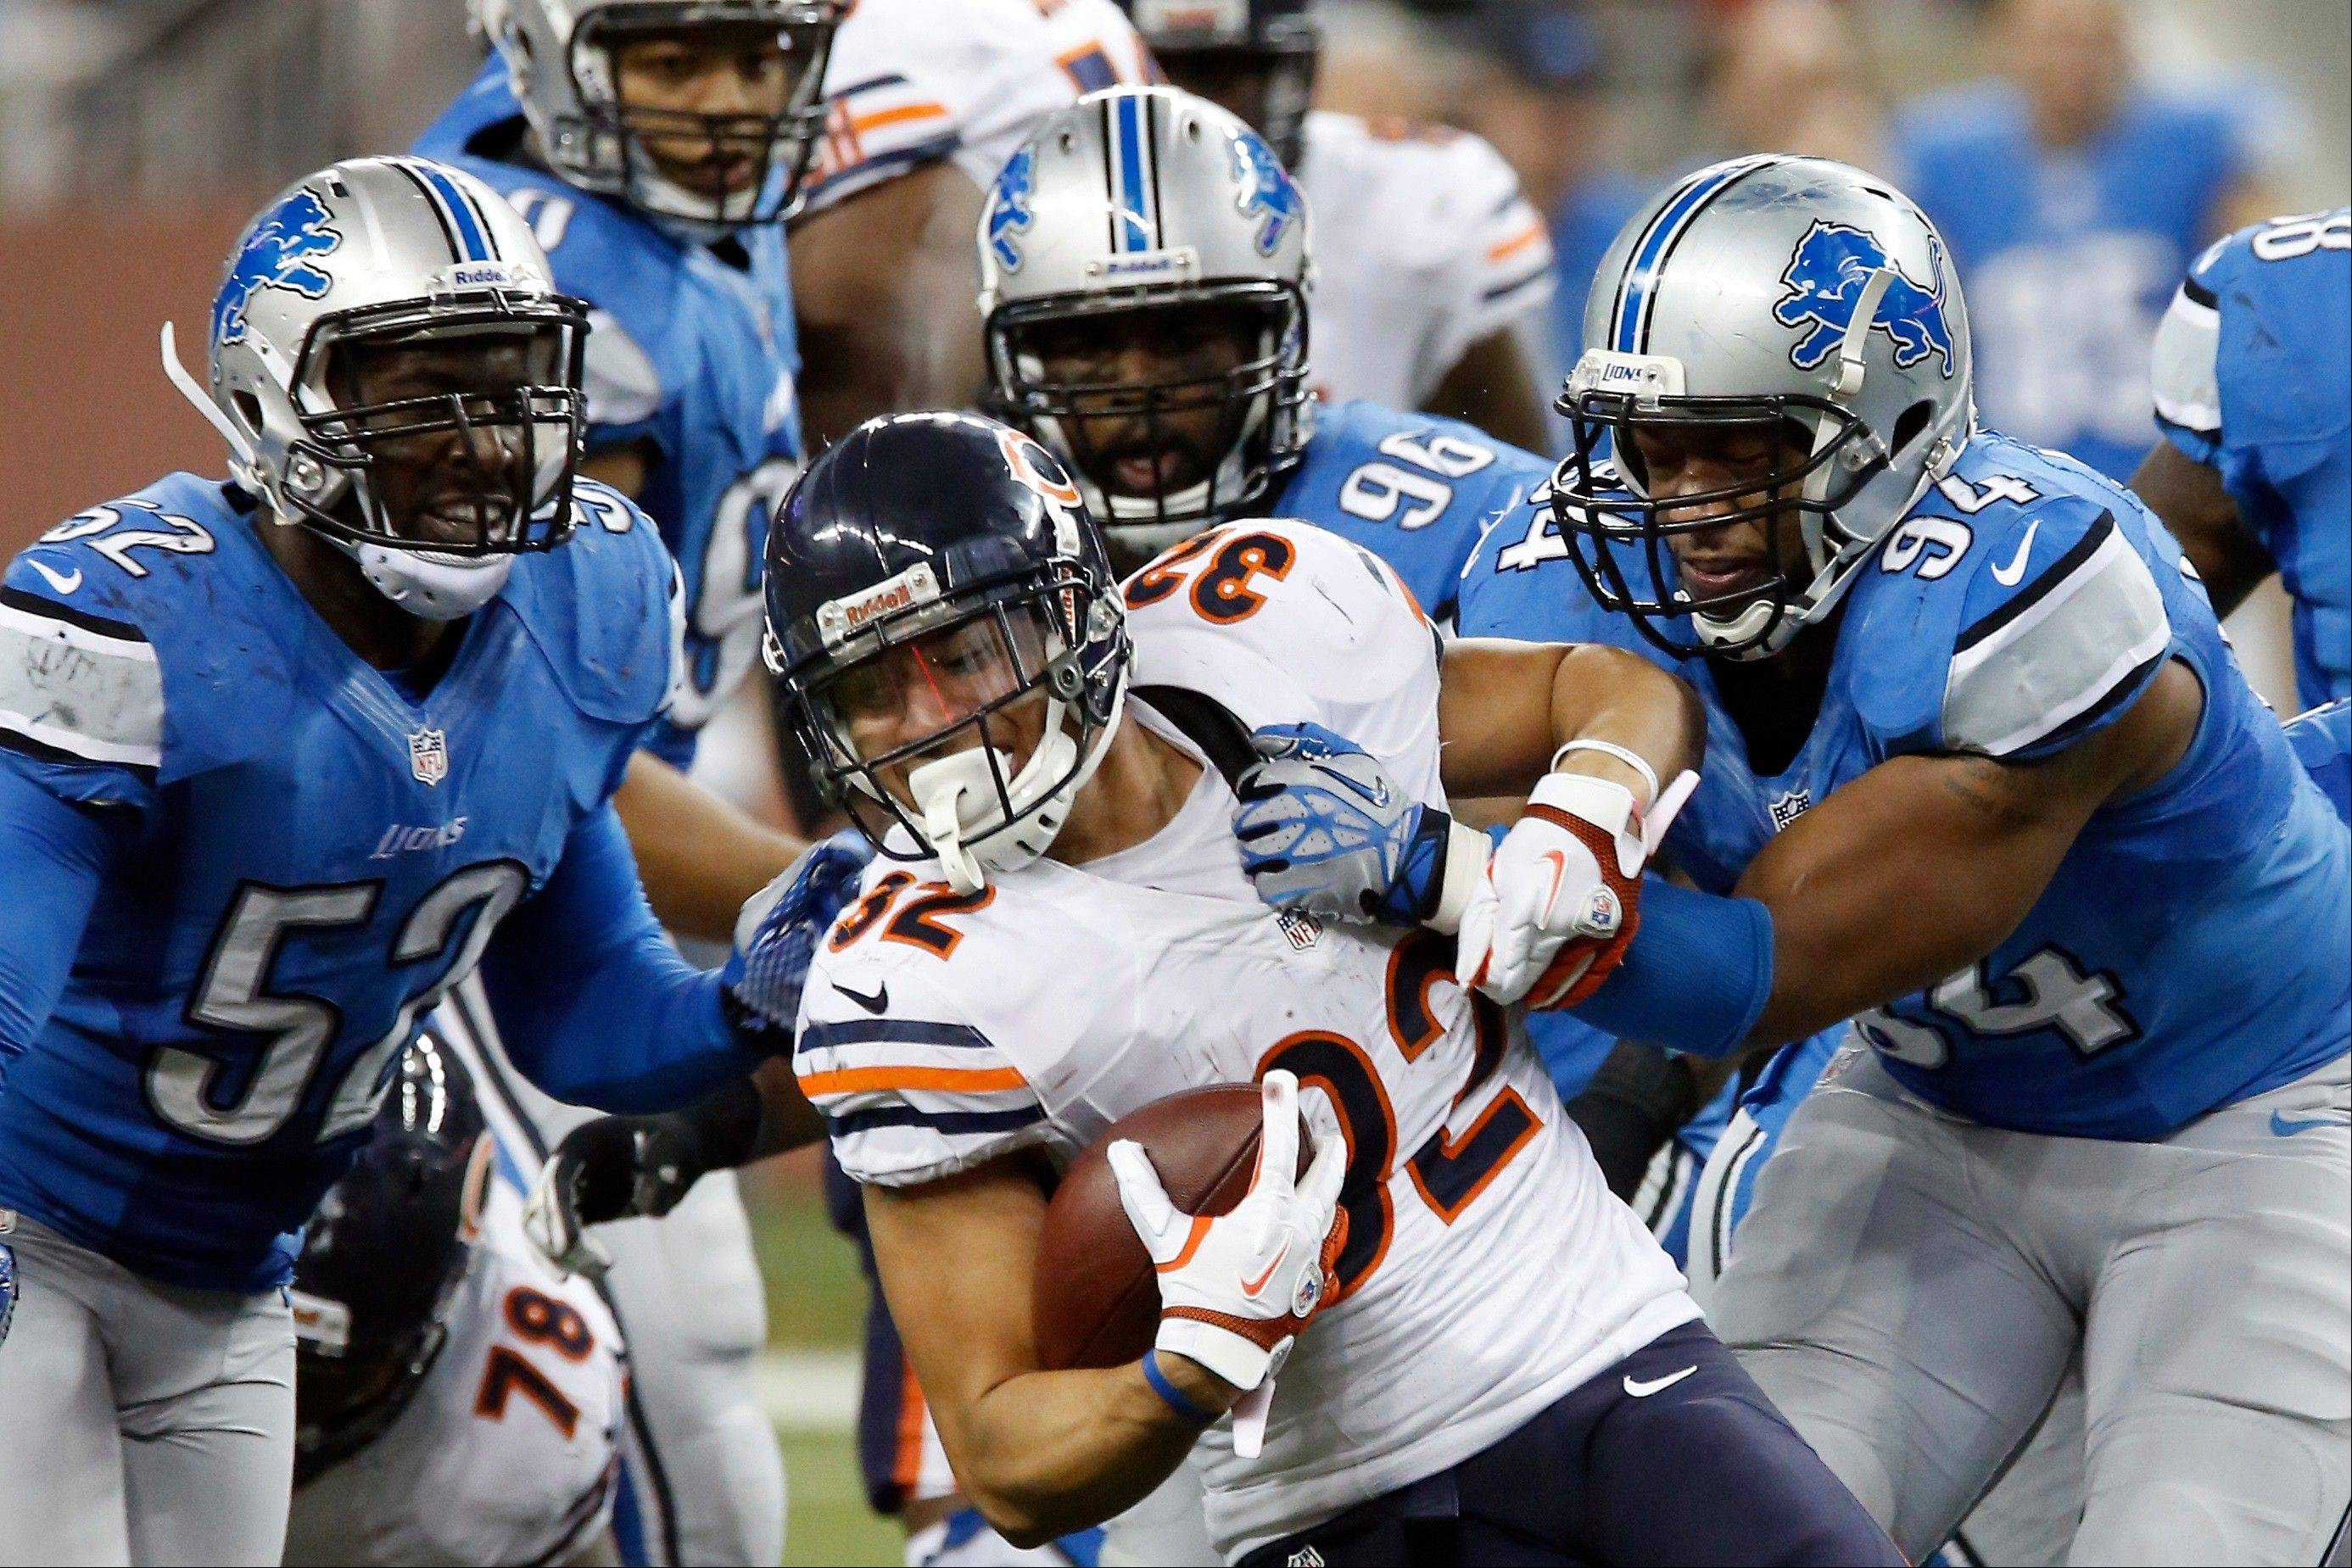 Chicago Bears running back Kahlil Bell (32) is stopped by Detroit Lions defensive end Lawrence Jackson (94) during the fourth quarter. The Bears won 26-24.